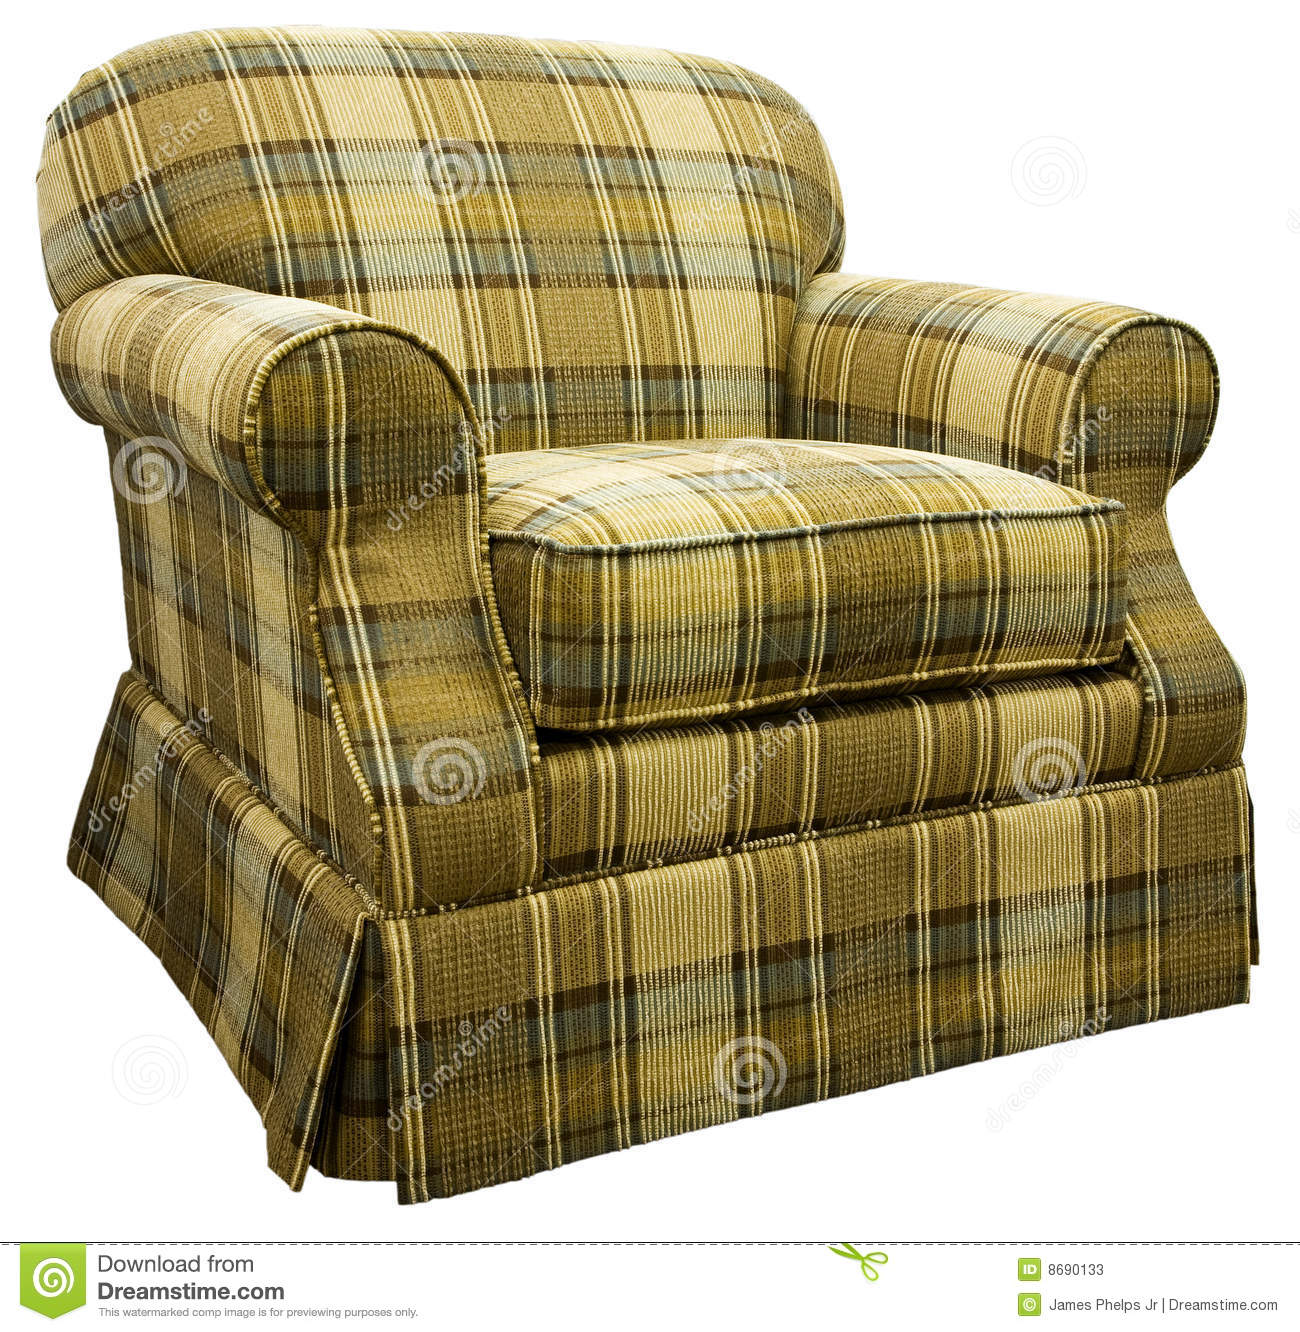 living room chair stock photos - image: 8690133